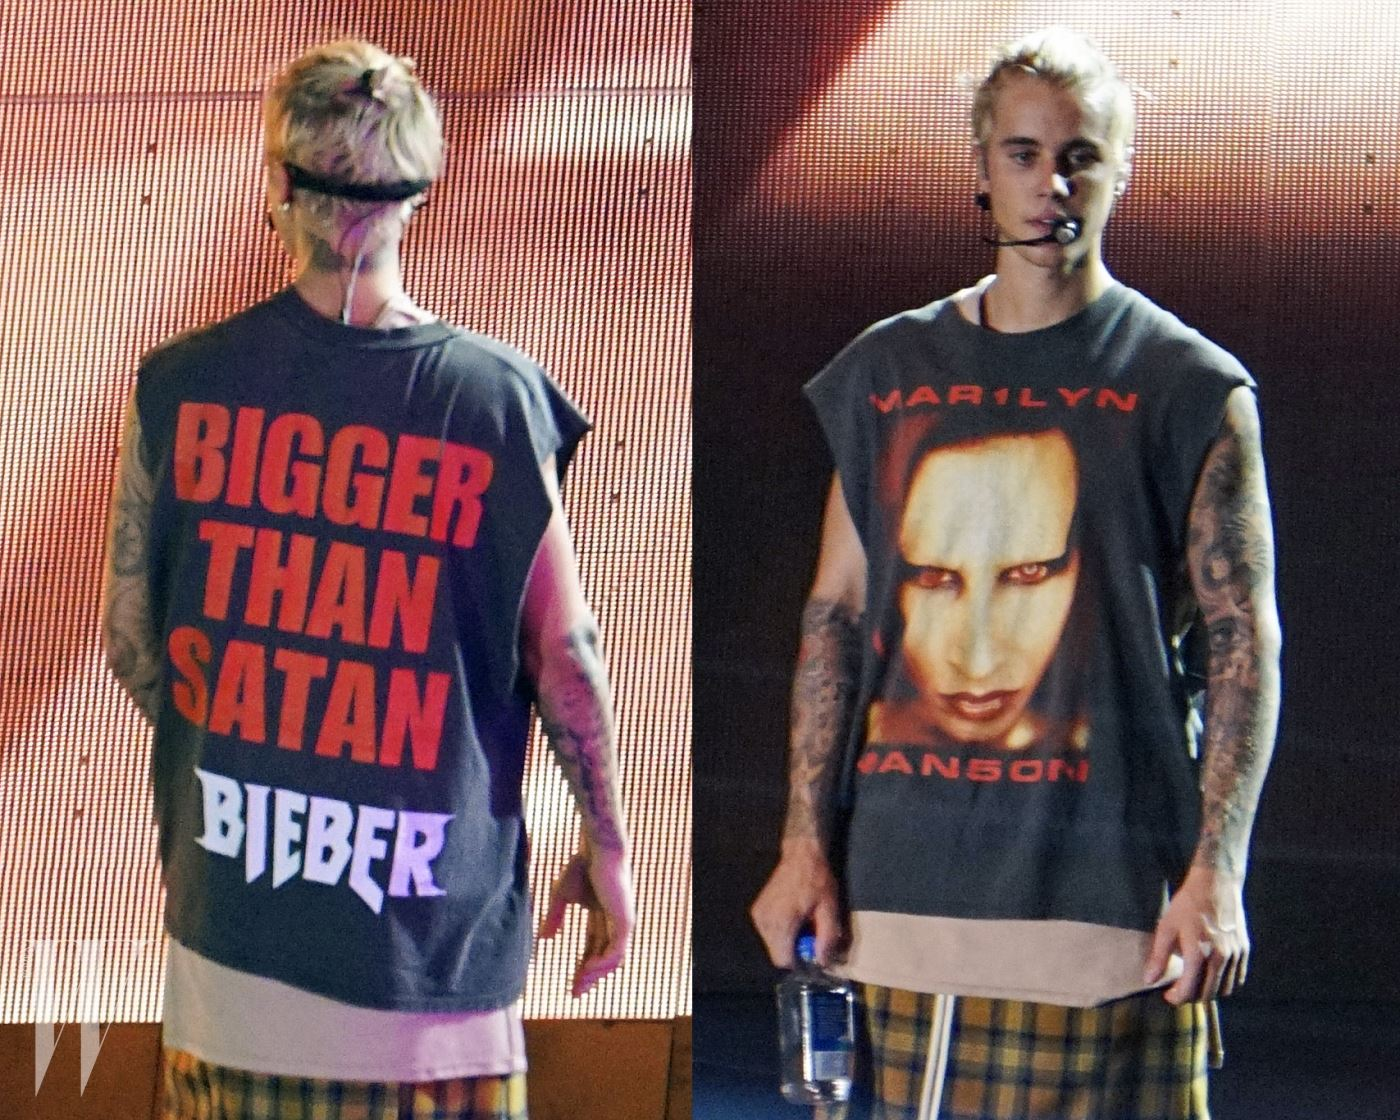 Justin Bieber declares he's 'BIGGER THAN SATAN' on 'Purpose World Tour' Debut Show!